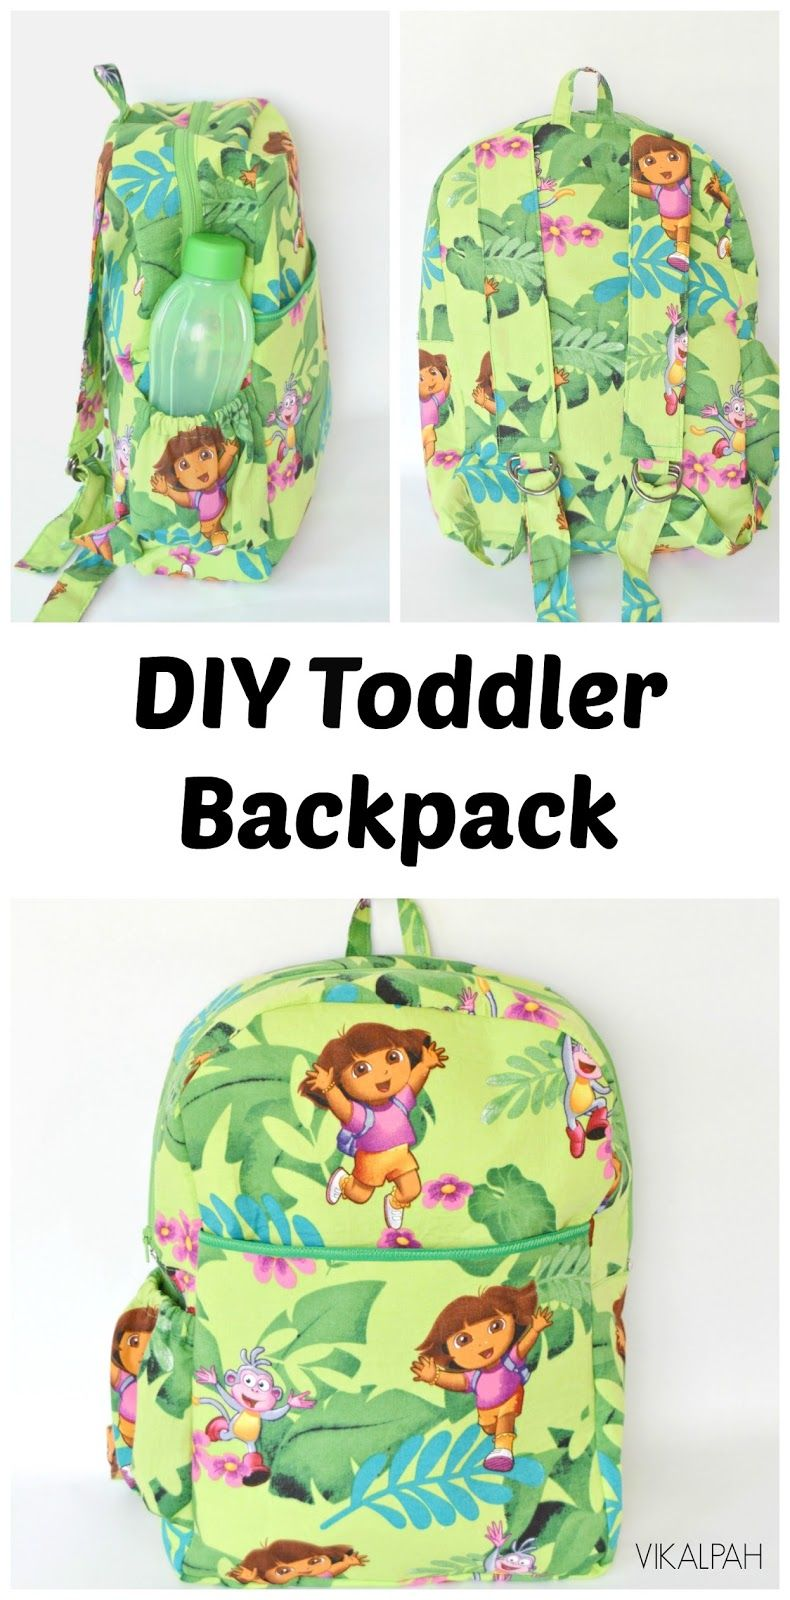 Diy toddler backpack with pattern sewing tutorial how to diy toddler backpack with pattern sewing tutorial how to inspirationspotlight jeuxipadfo Choice Image